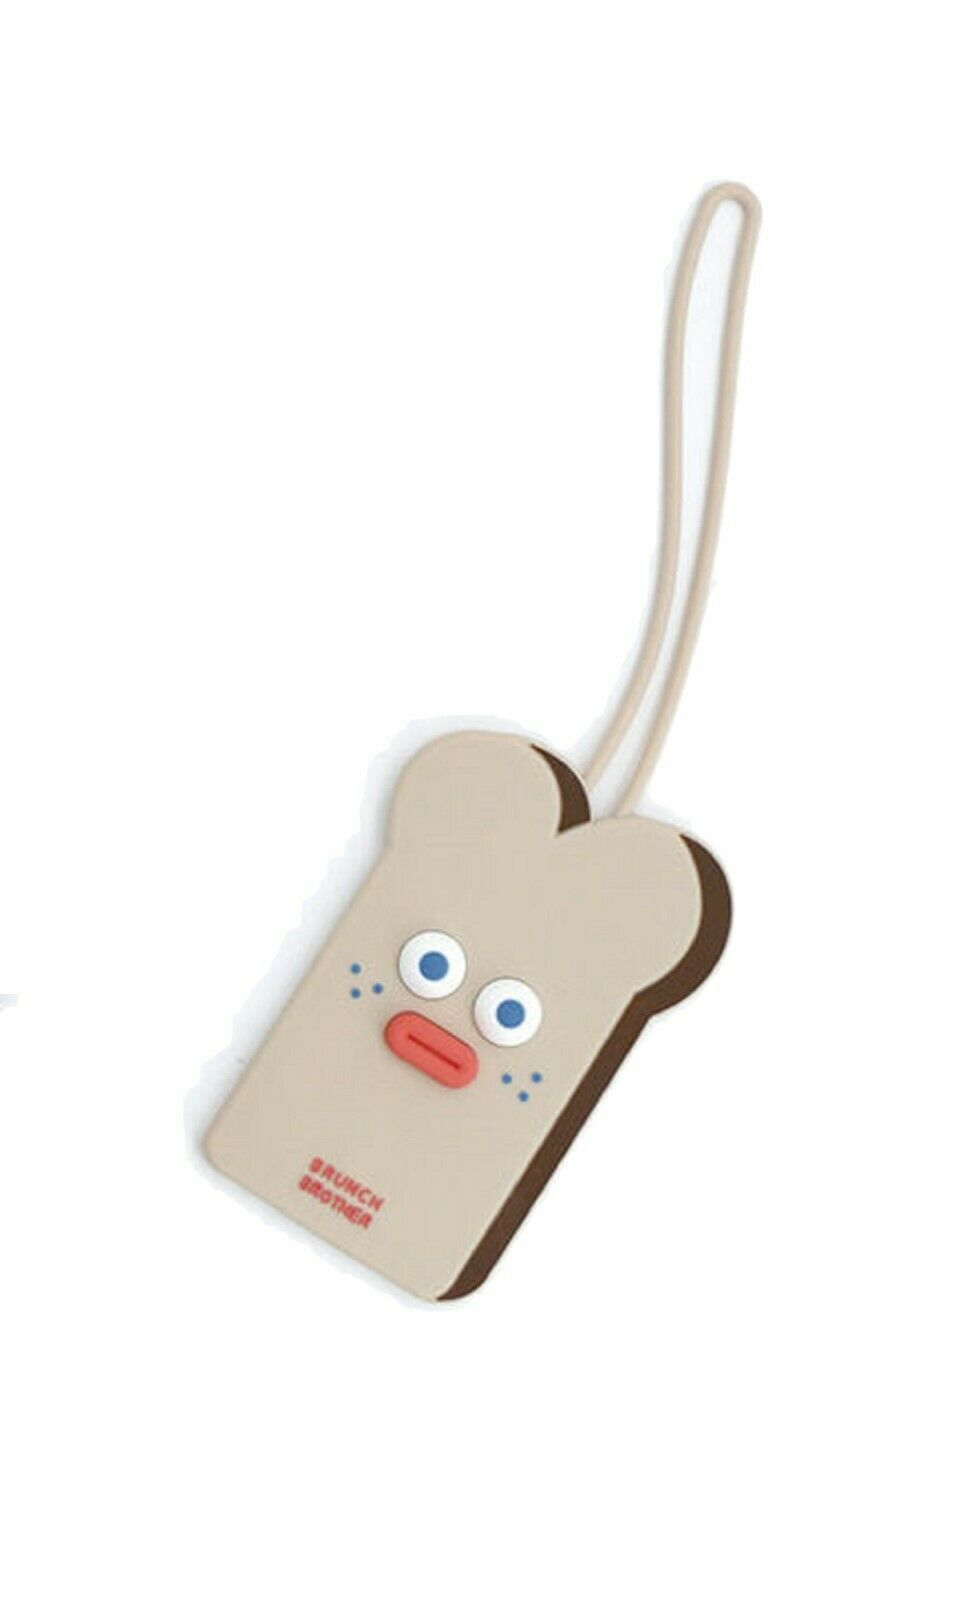 Brunch Brother Suitcase Luggage Tag popped Eyes Baggage Travel Bag (Toast)